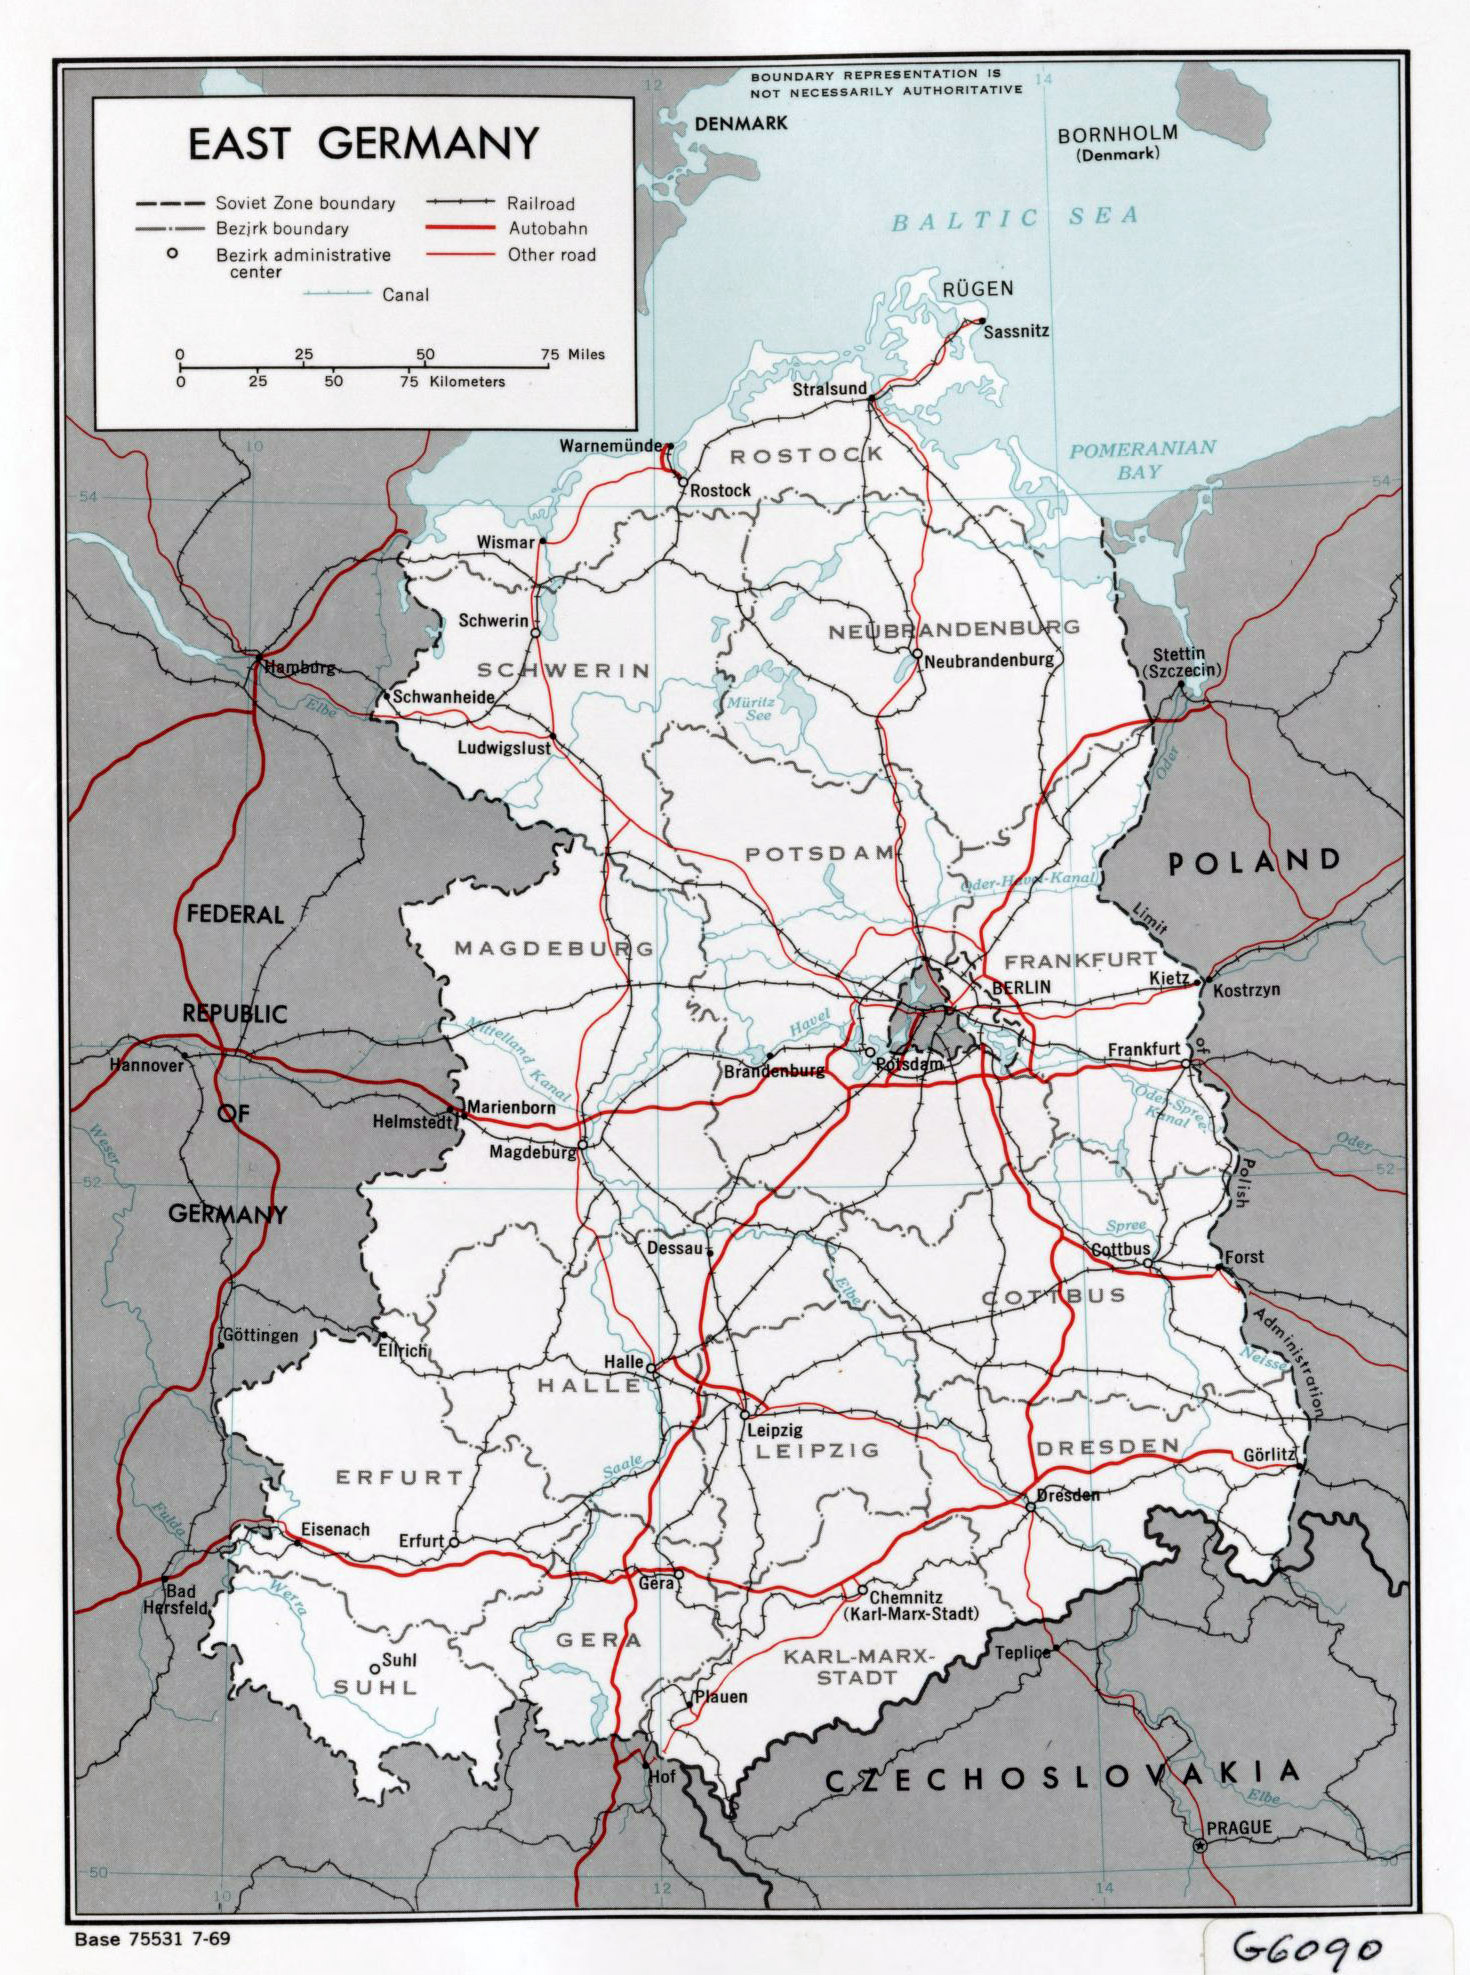 Large political and administrative map of East Germany with roads